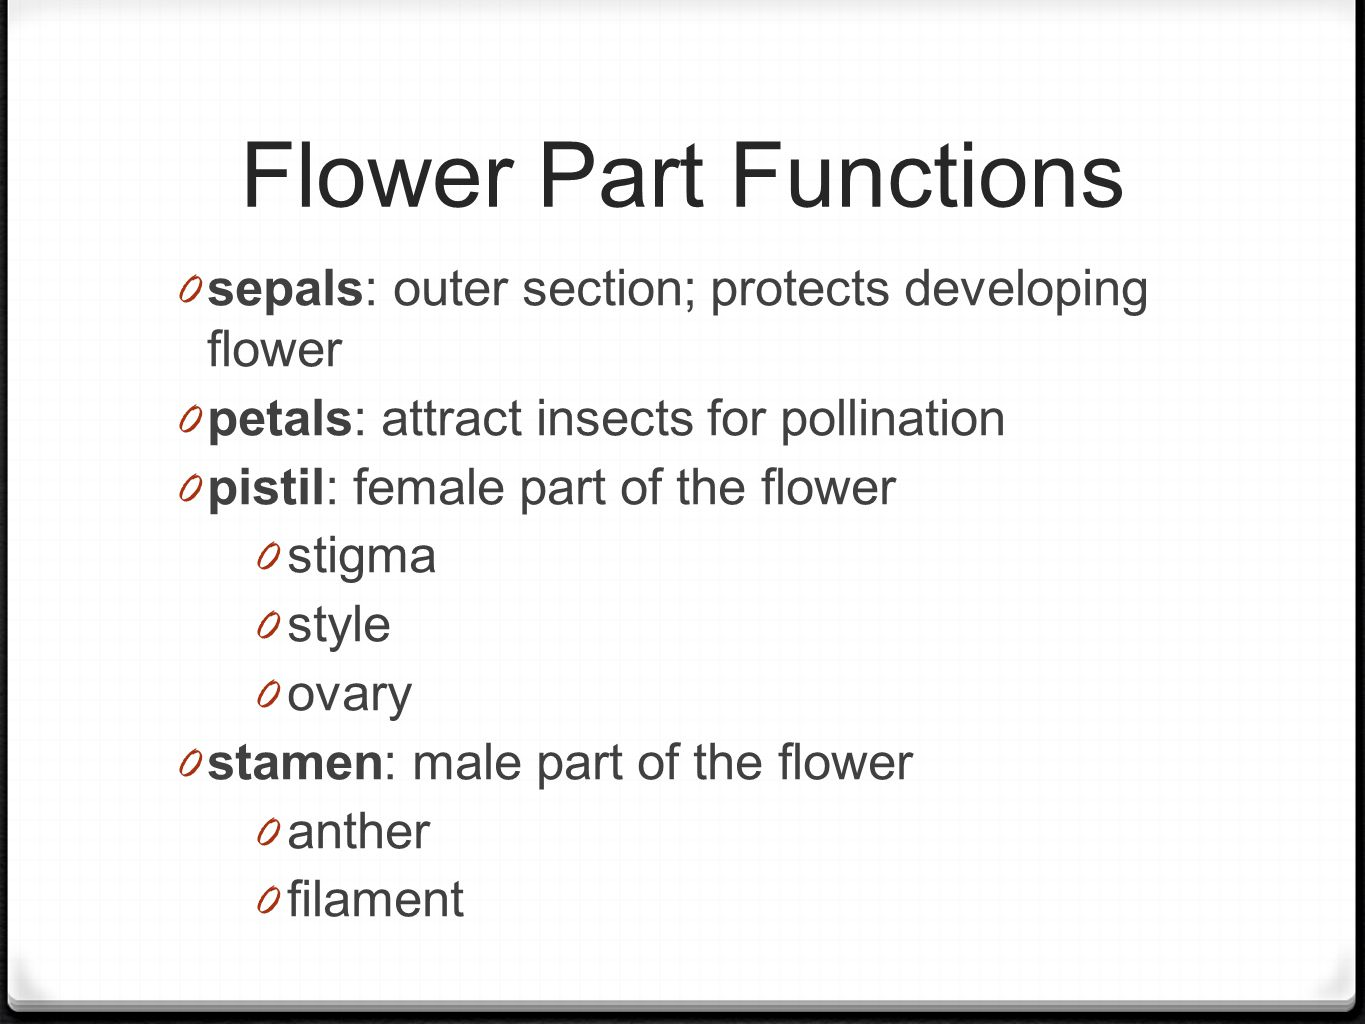 Flower Part Functions 0 sepals: outer section; protects developing flower 0 petals: attract insects for pollination 0 pistil: female part of the flower 0 stigma 0 style 0 ovary 0 stamen: male part of the flower 0 anther 0 filament